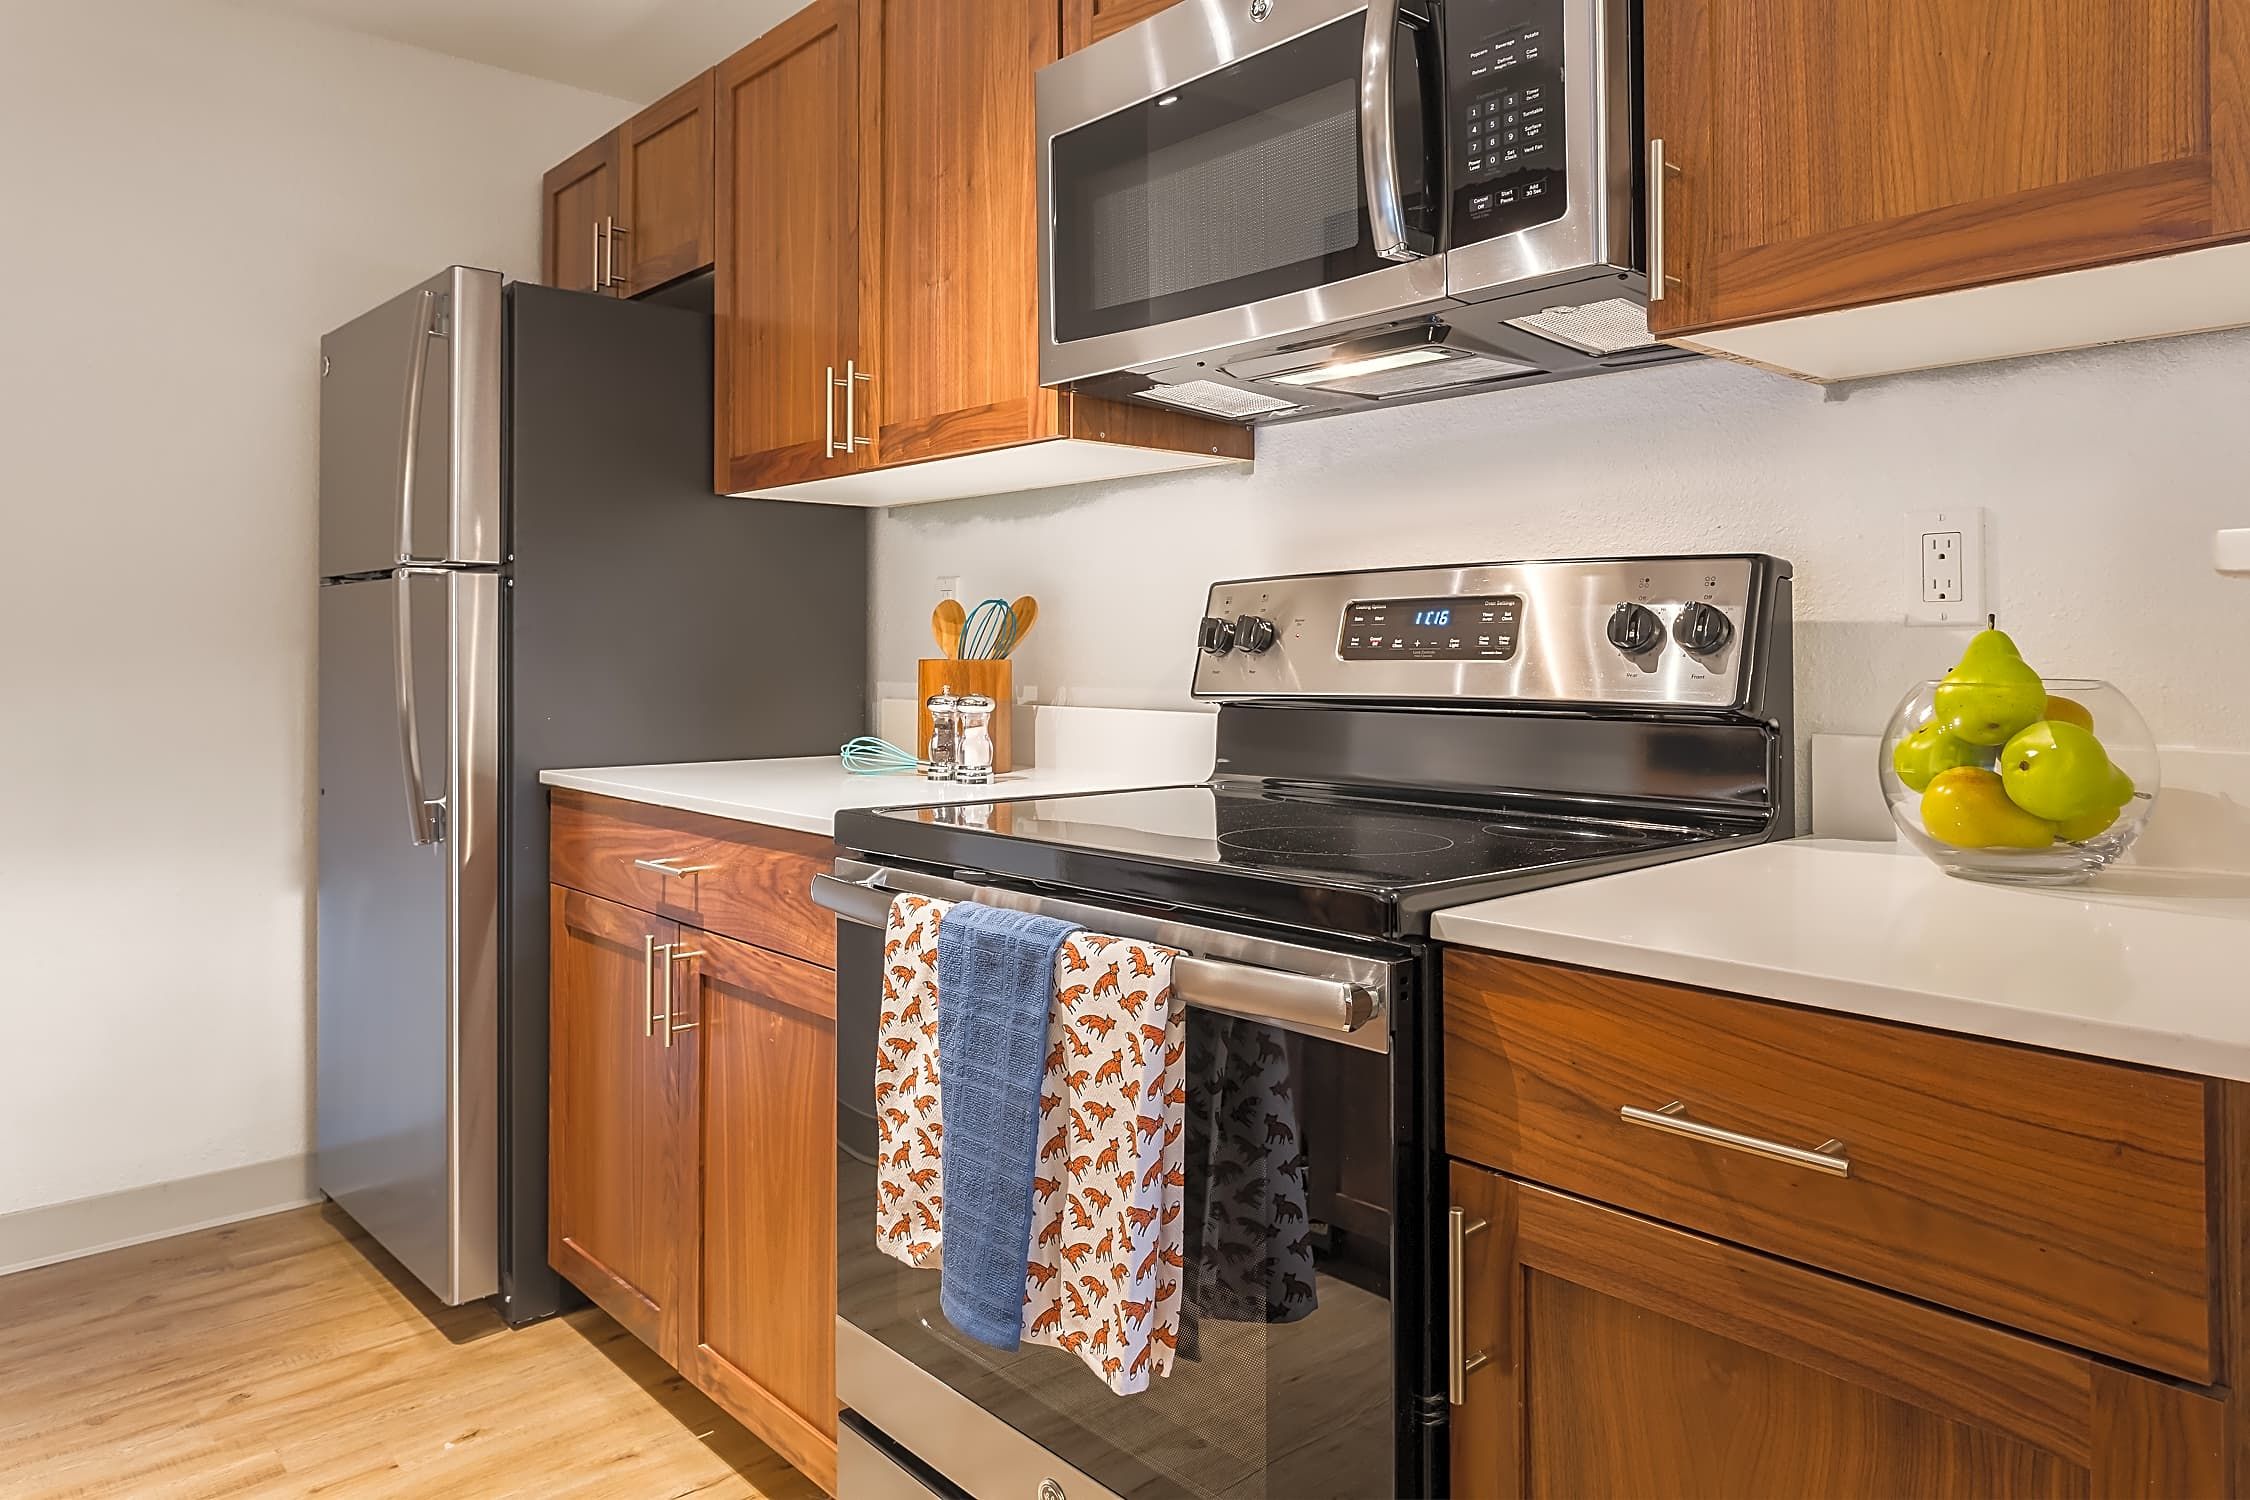 Beautiful all-wood cabinets. Artesia Apartments Everett, WA